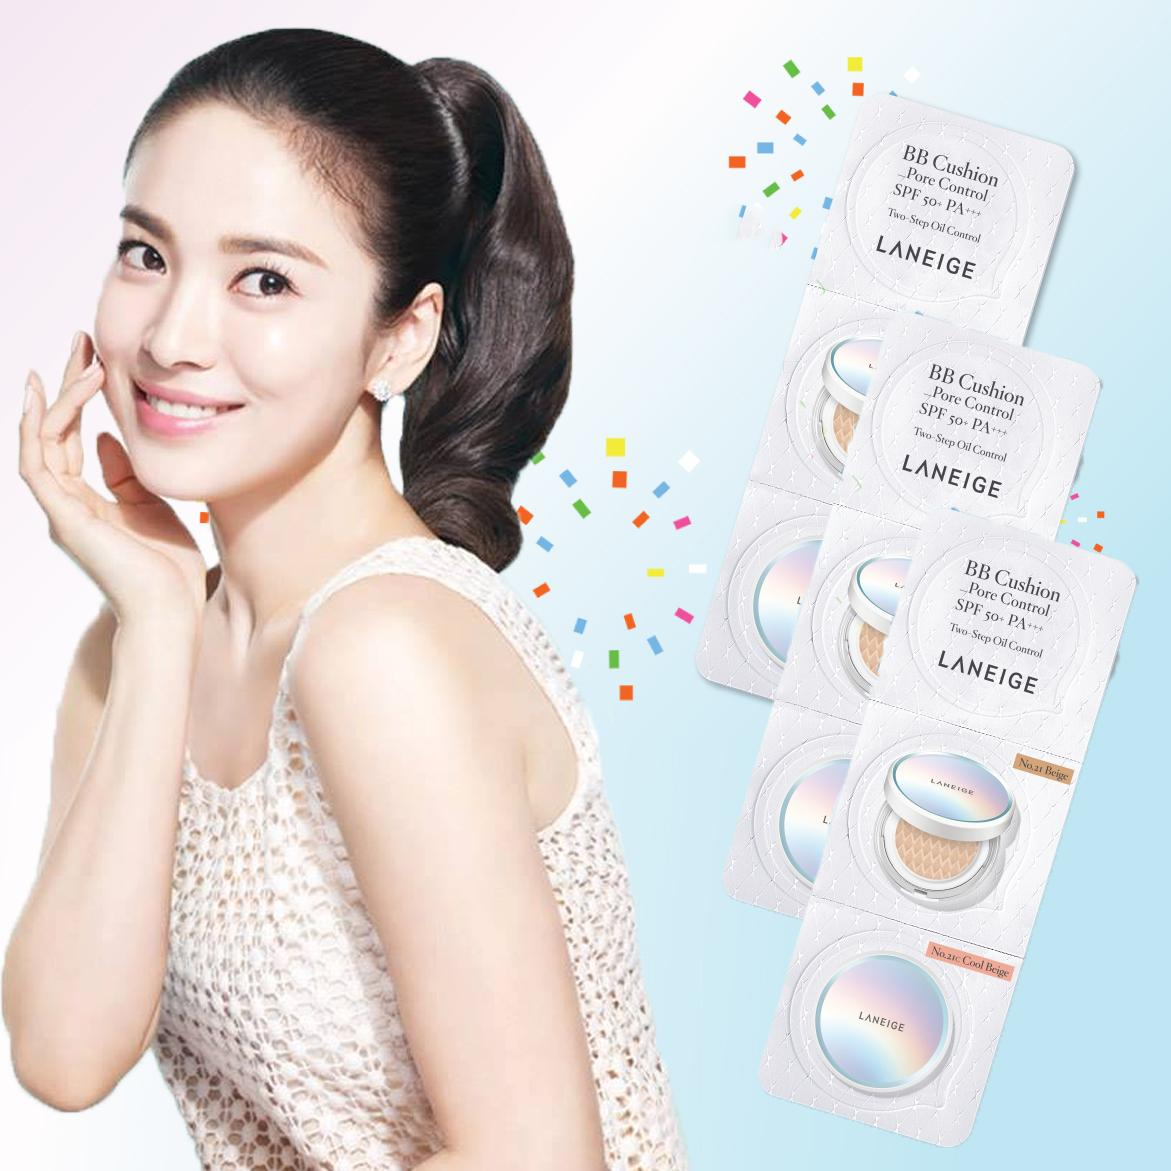 Laneige Cushion Blister Set Of 3 By Mybeautyshop.